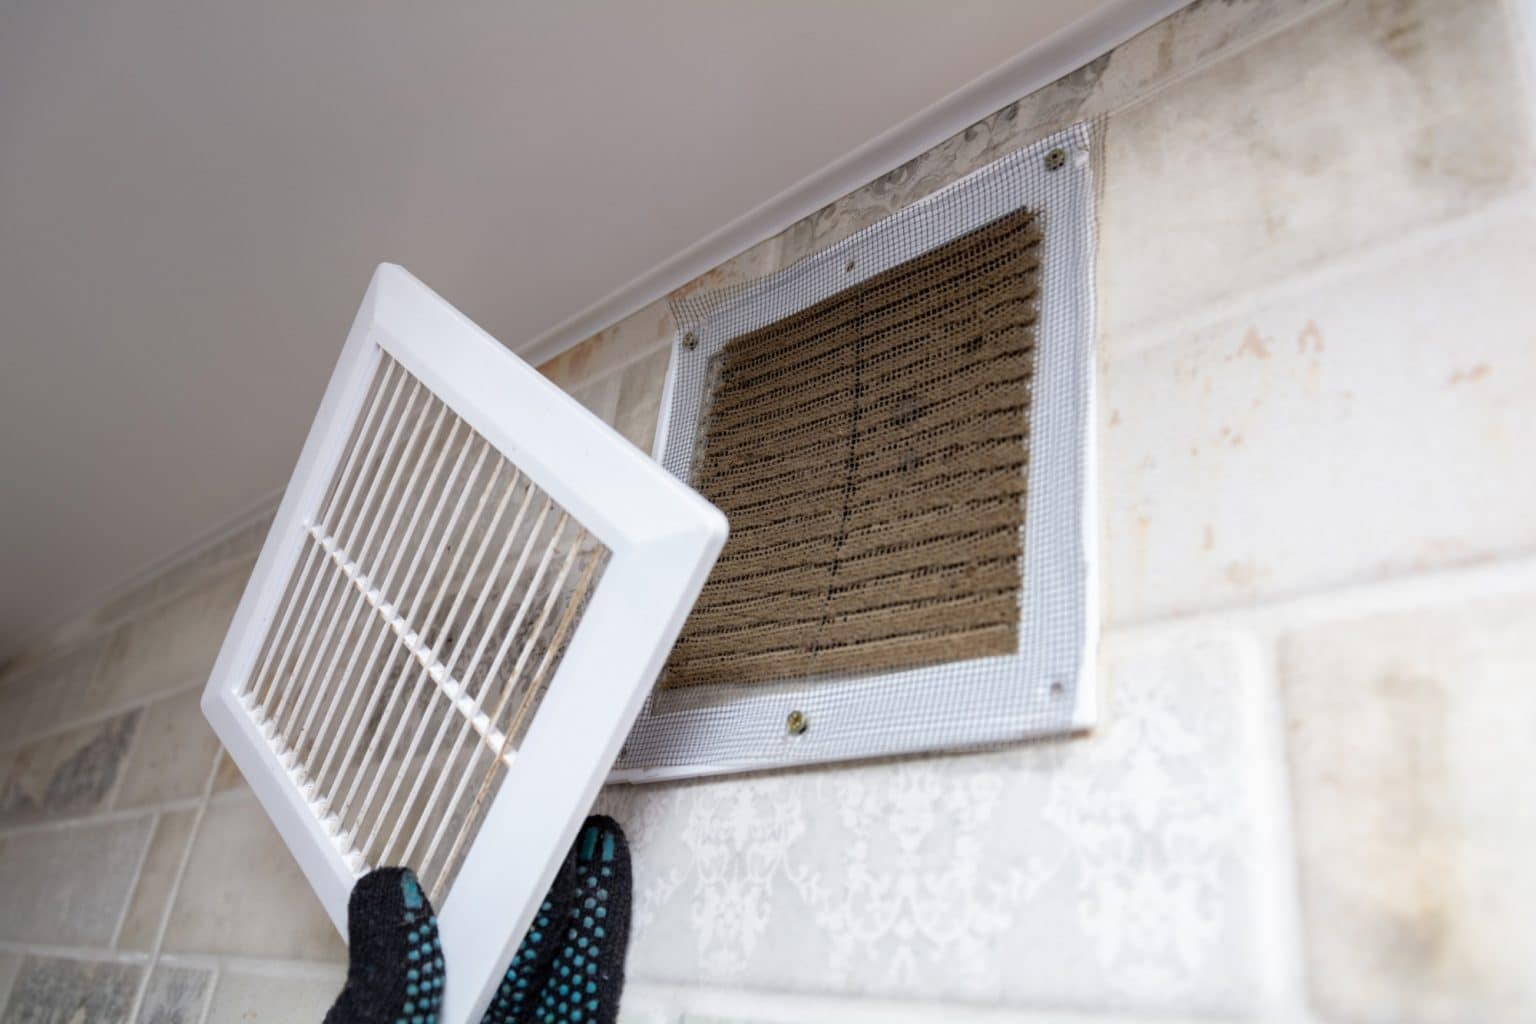 How To Clean Ac Unit 1536x1024 1